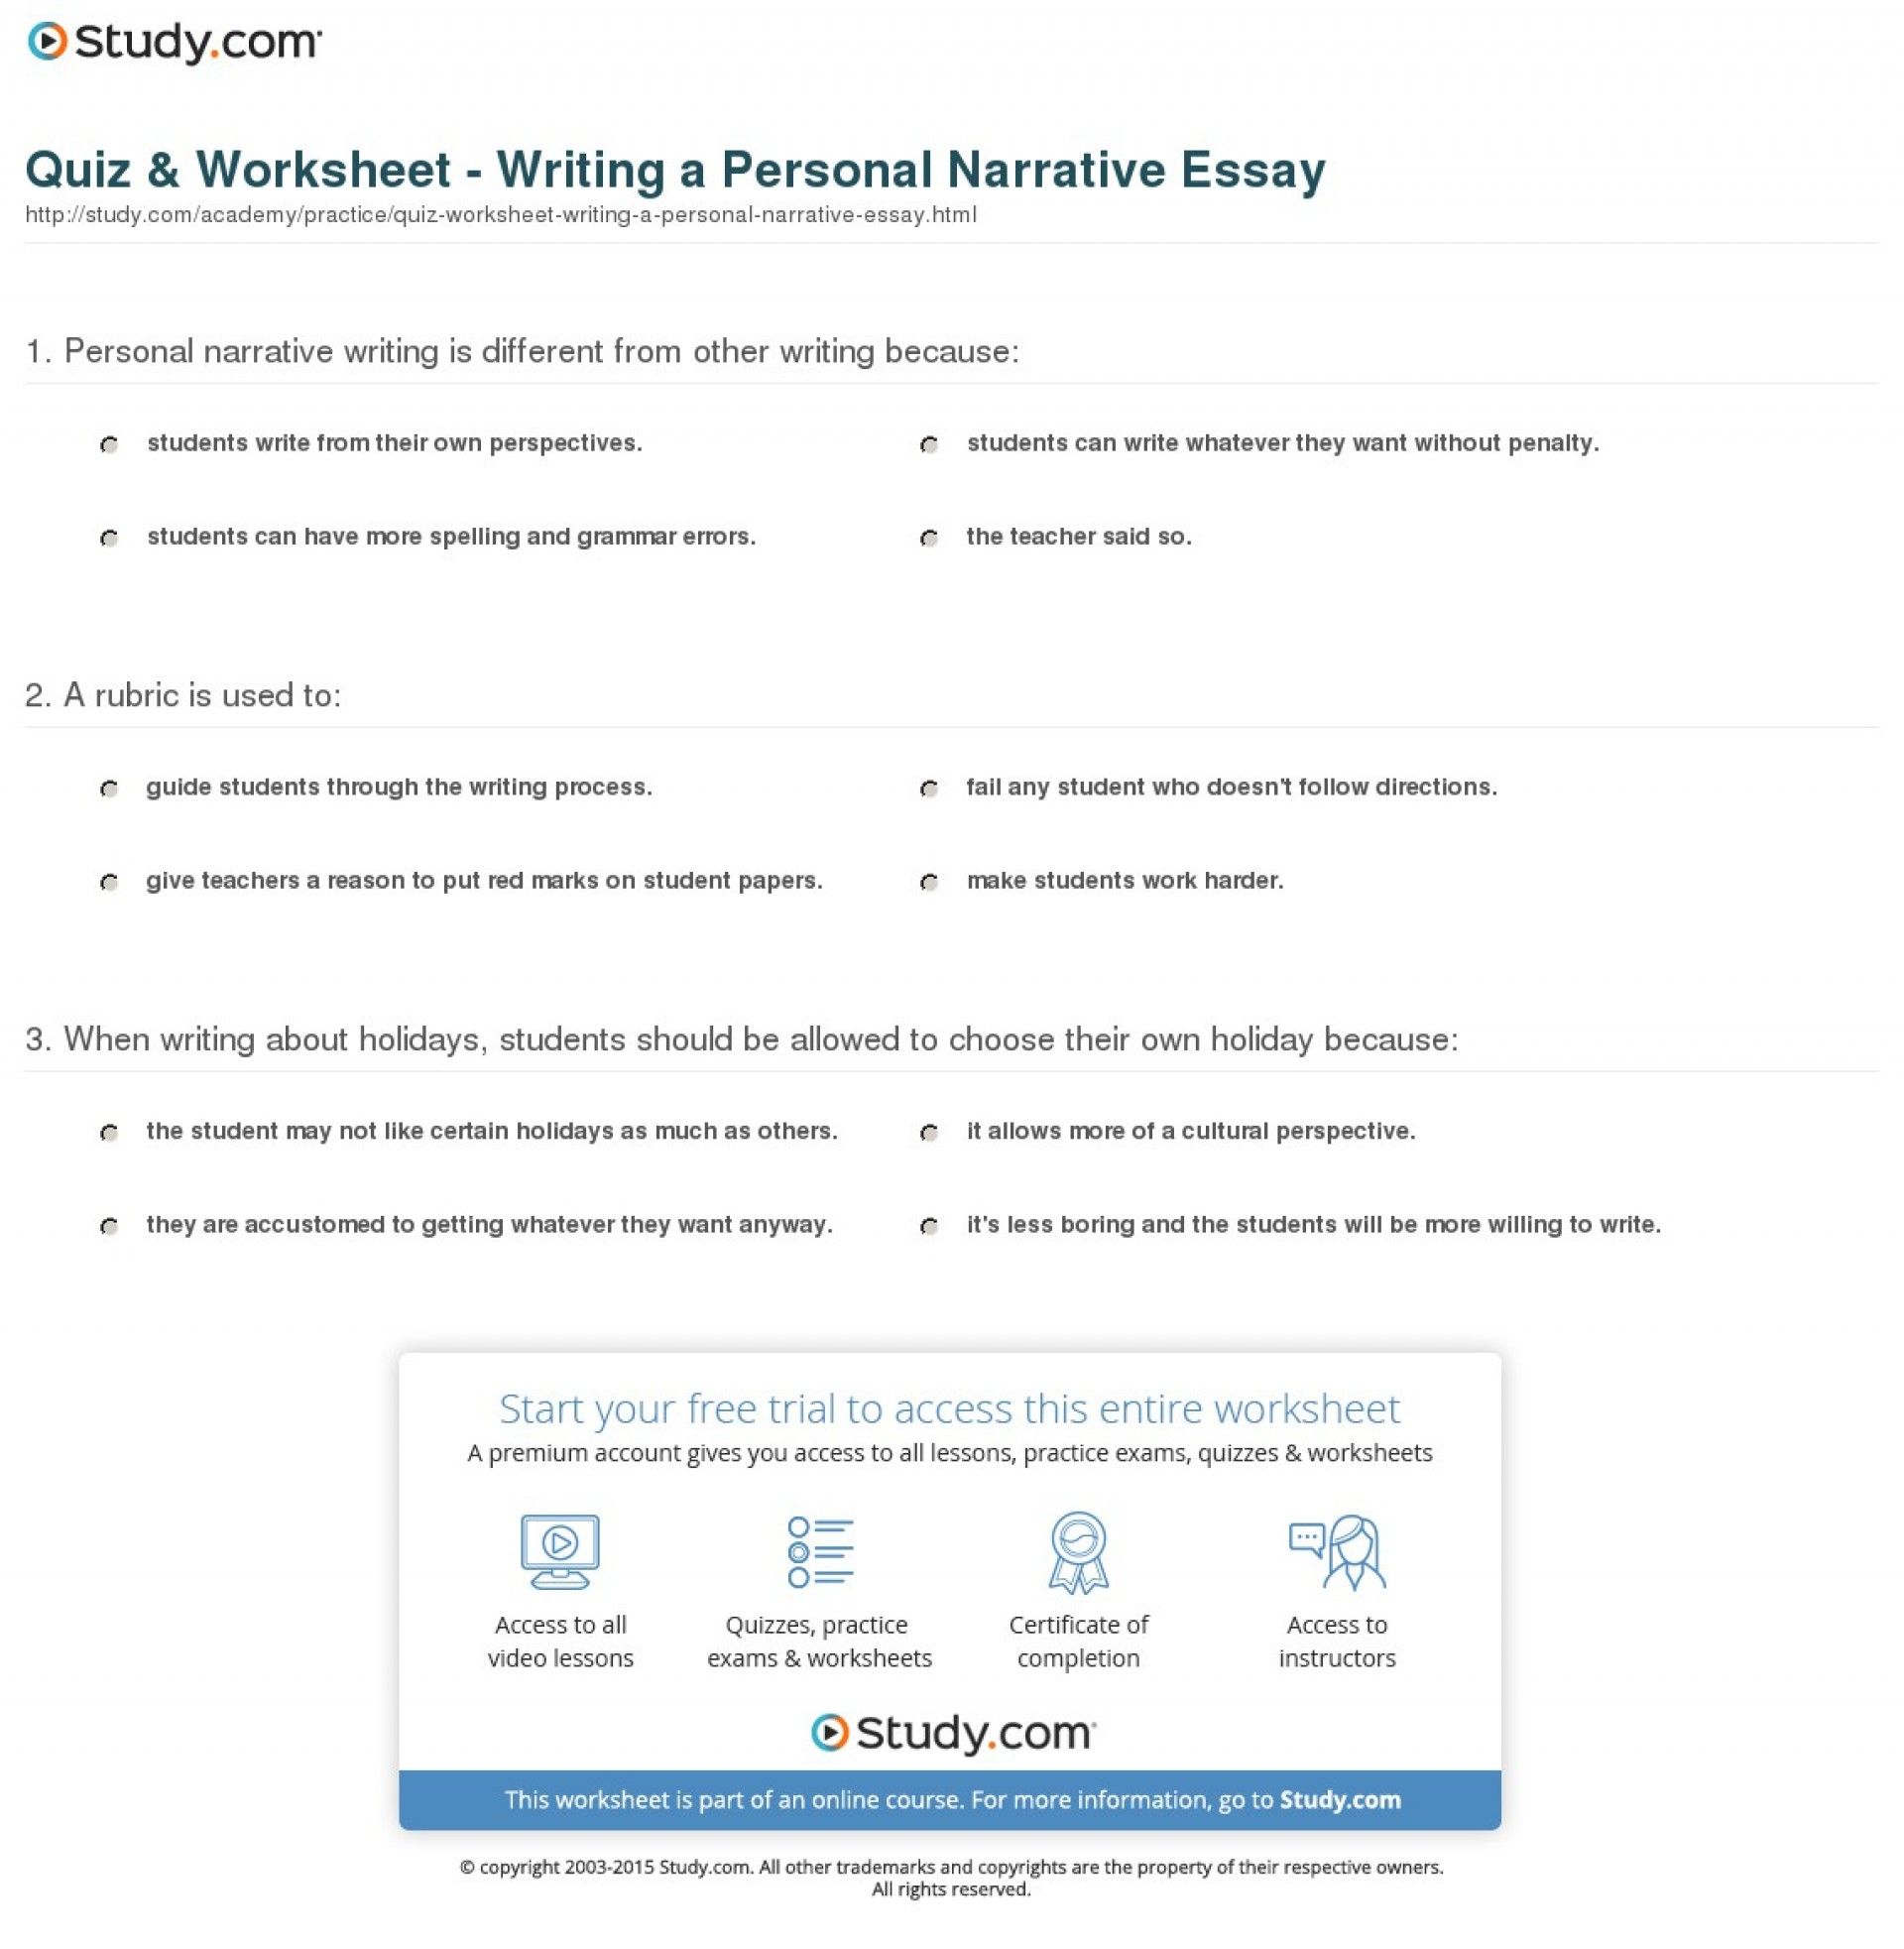 015 Quiz Worksheet Writing Personal Narrative Essay Example How To Beautiful Start A Write With Dialogue Introduction 1920